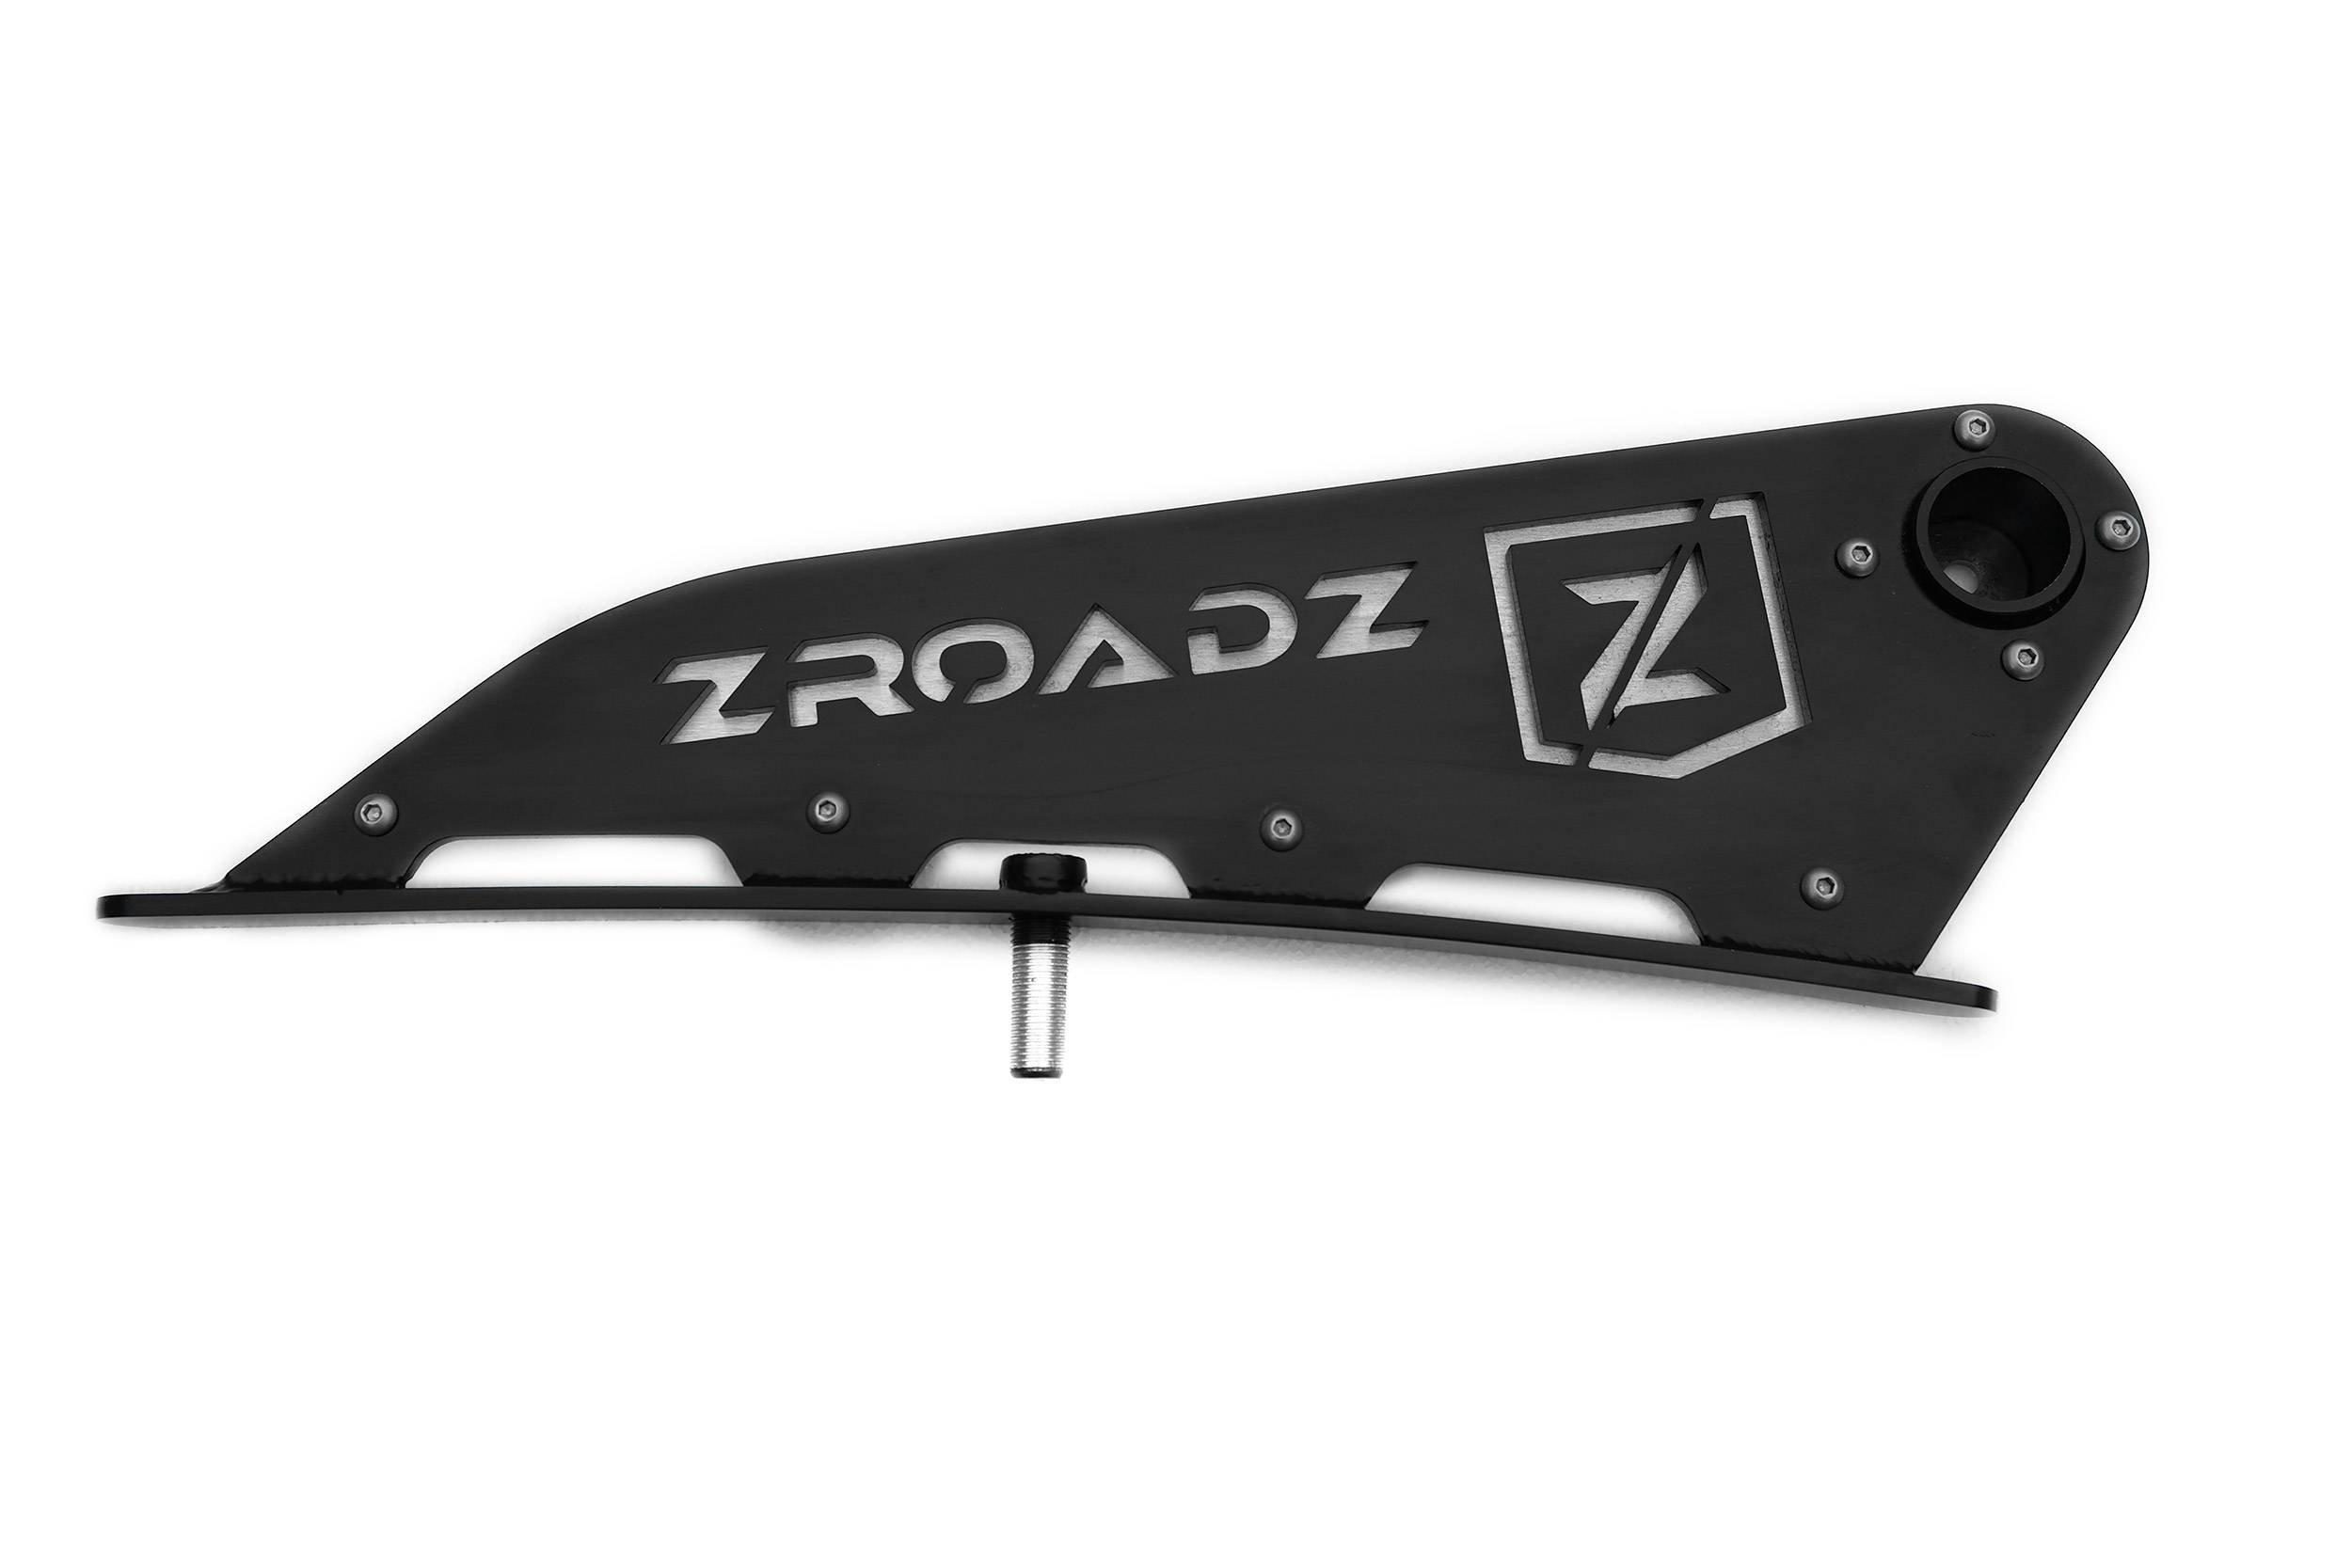 ZROADZ                                             - Silverado, Sierra 1500 Front Roof LED Bracket to mount 50 Inch Staight LED Light Bar - PN #Z332181